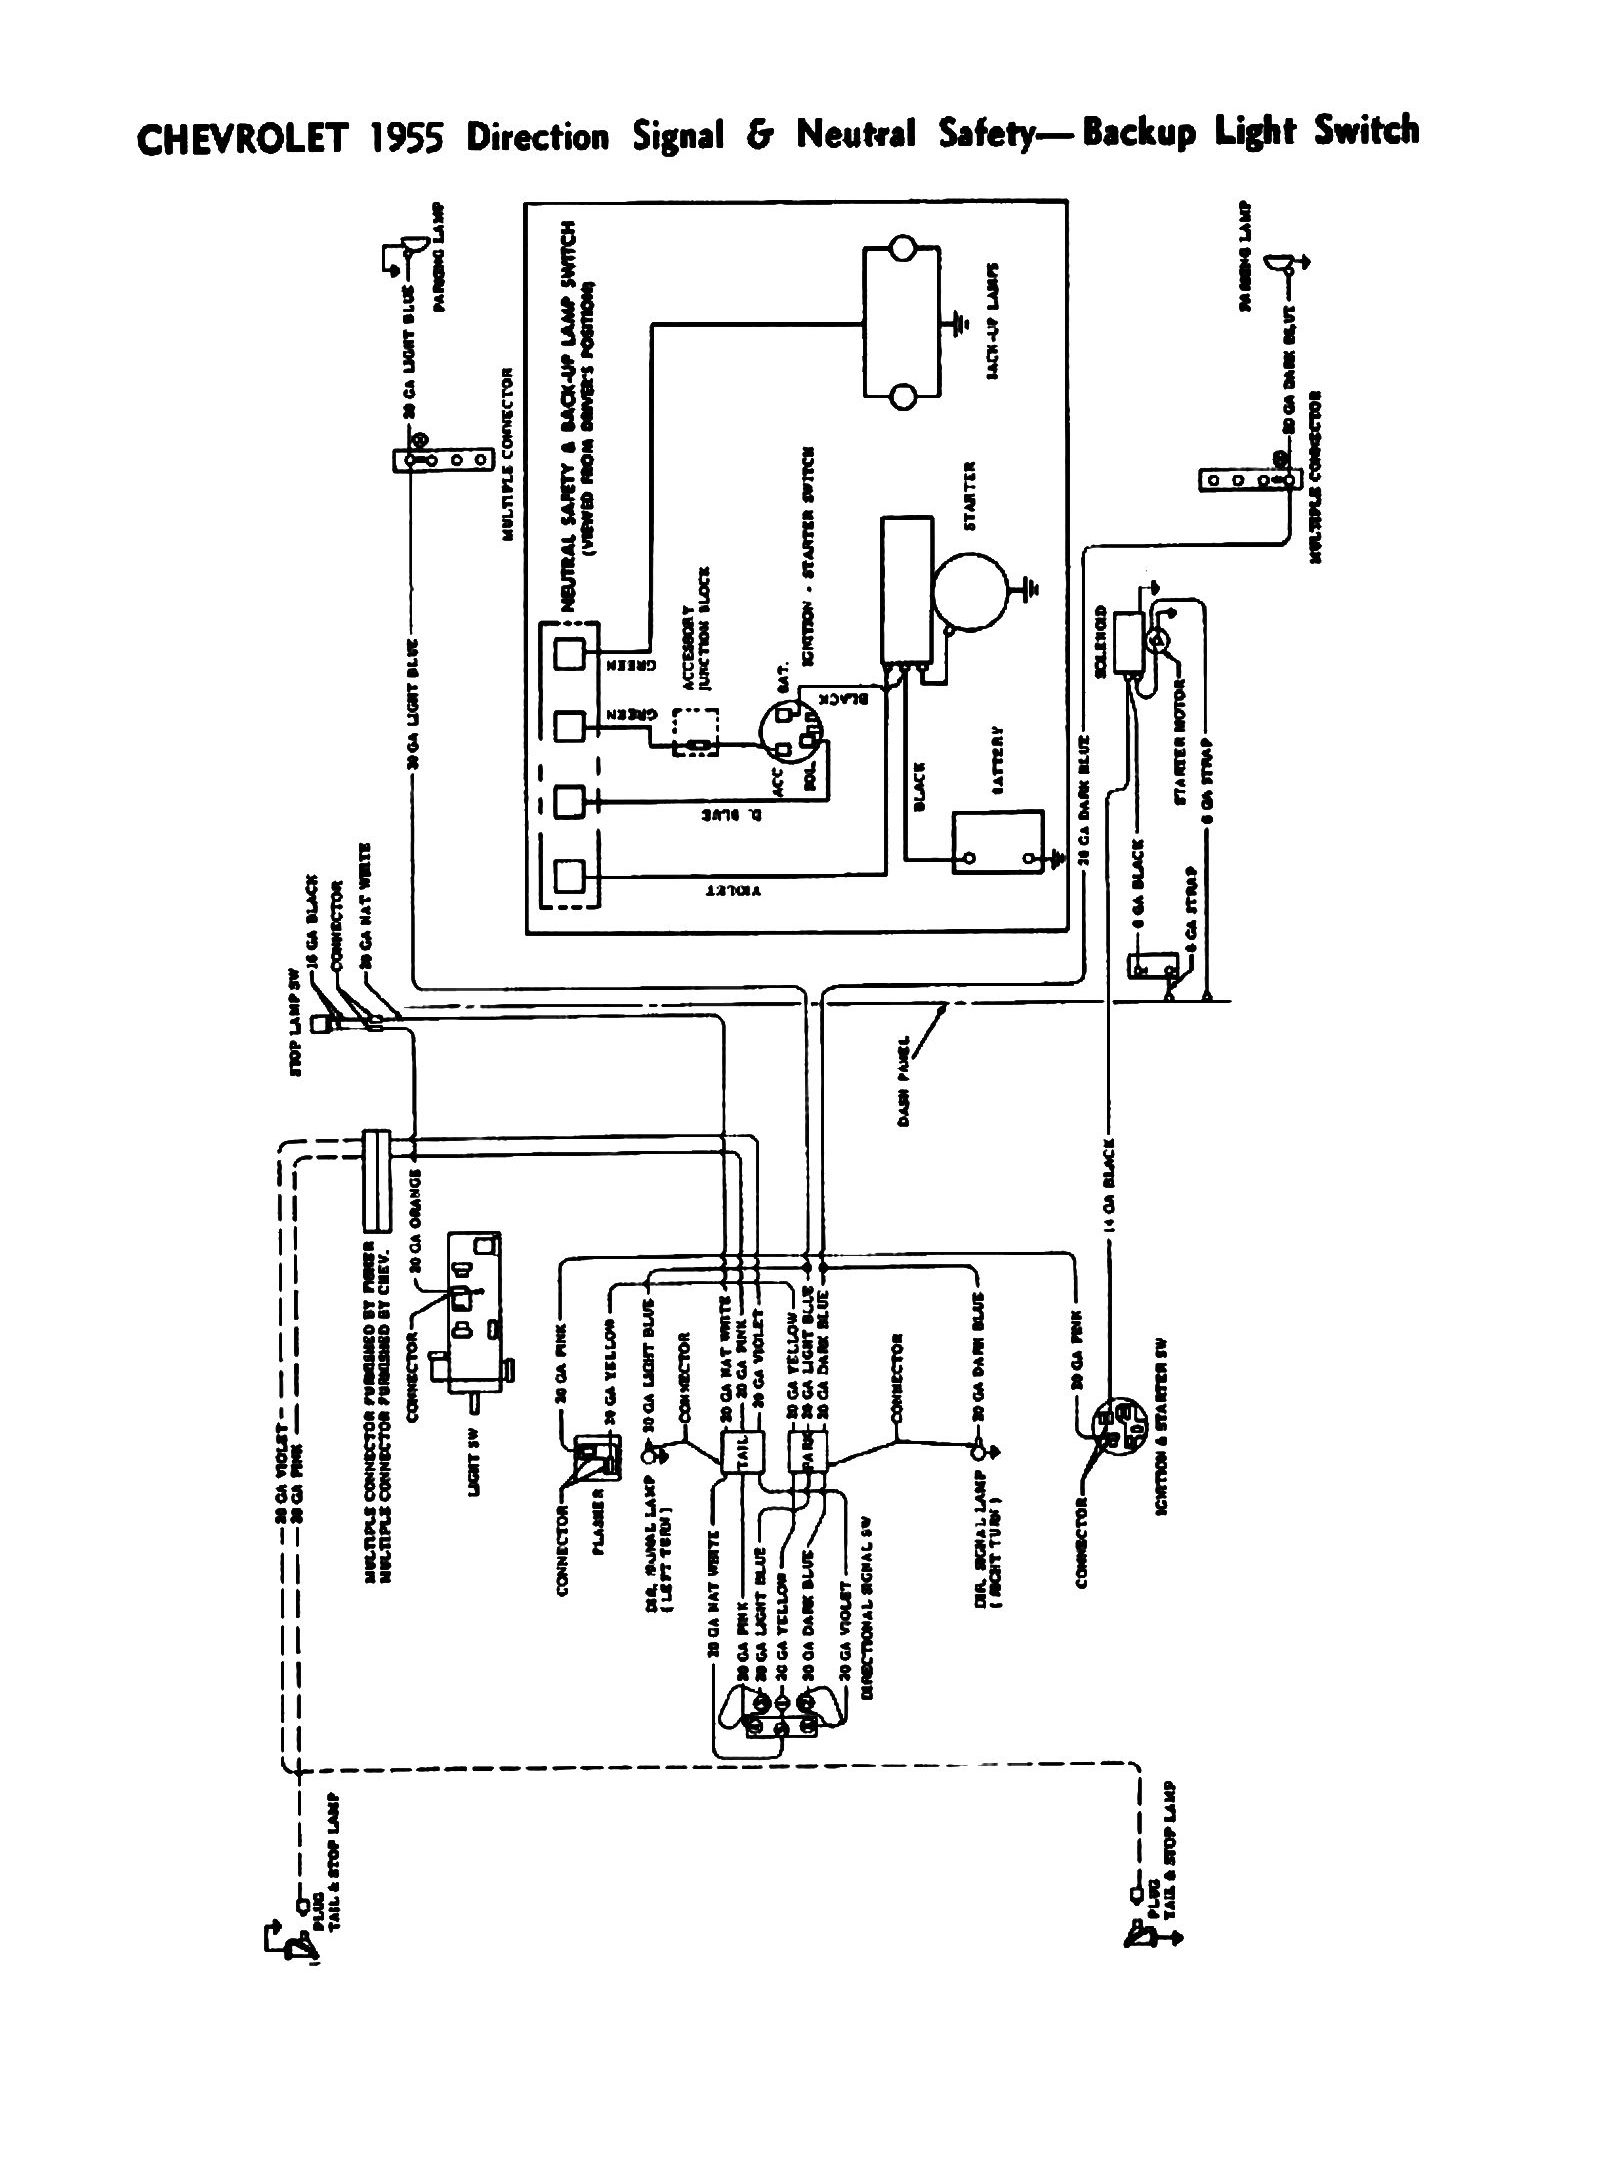 KF5e 20607 moreover 1999 Silverado Rear Brake Line Diagram additionally Where Is Fuel Pressure Regulator On 1997 1500 Chevy Truck 350 Vortec Engine    899758 besides Serpentine Belt Diagram 2004 2003 Hummer H2 V8 60 Liter Engine With 145   Alternator 04645 as well Chevrolet Silverado 1998 Chevy Silverado Air Conditioner Relay Will Not Engage. on 2001 chevy silverado 1500 wiring diagram